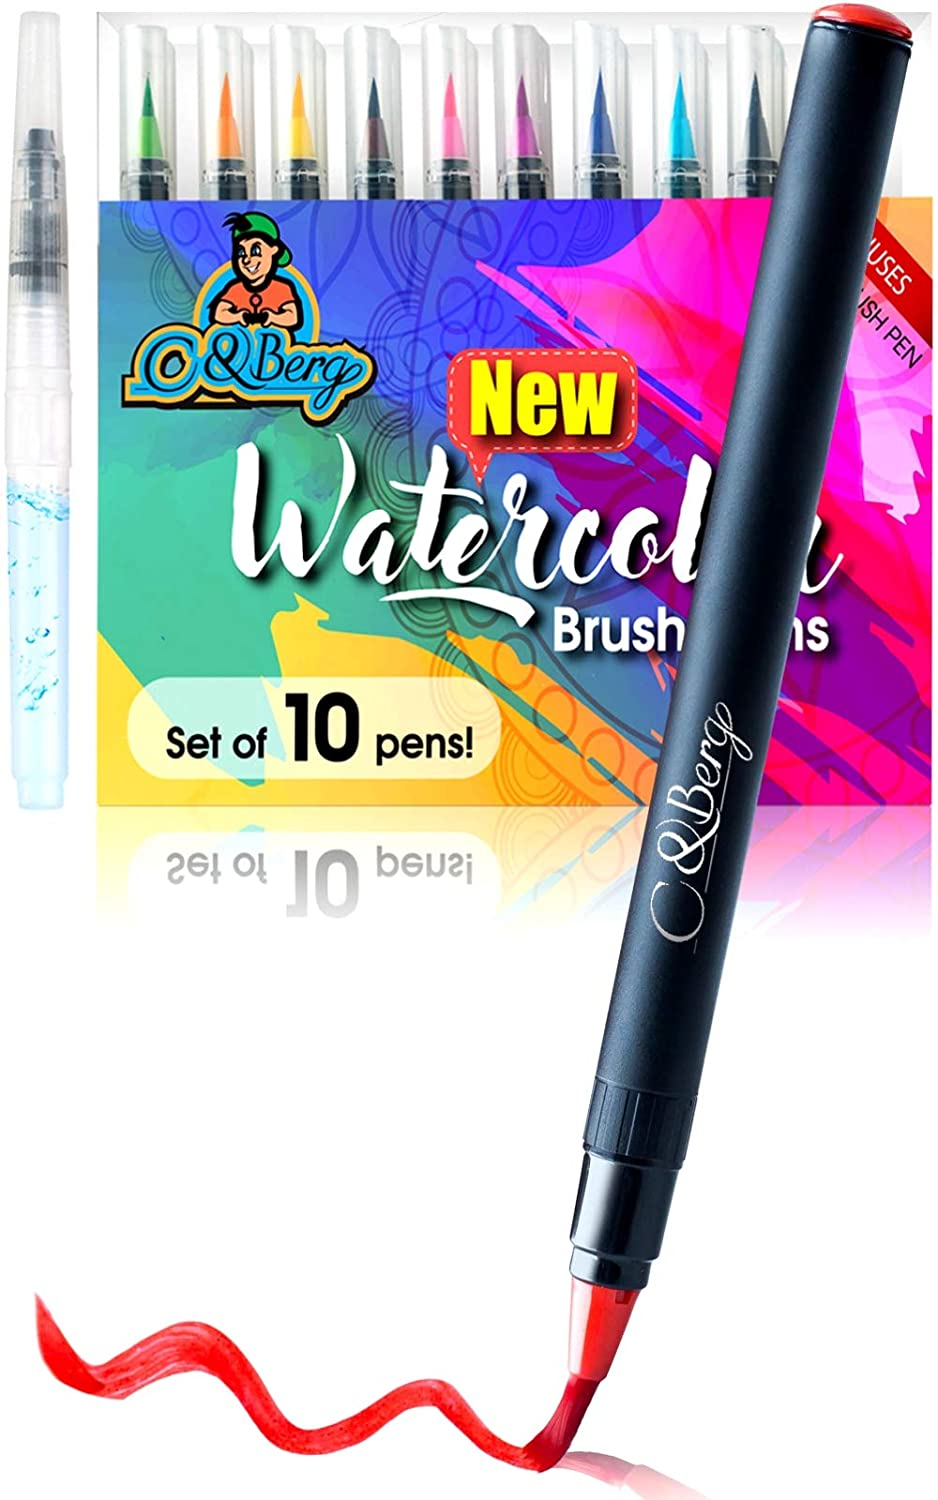 Non Toxic Watercolor Paint Coloring Painting 20 Watercolor Brush Pens Soft Flexible Tip Drawing Watercolor Paint Markers for Adult Coloring Books Set of 20 Watercolor pens by C/&Berg Model 2019